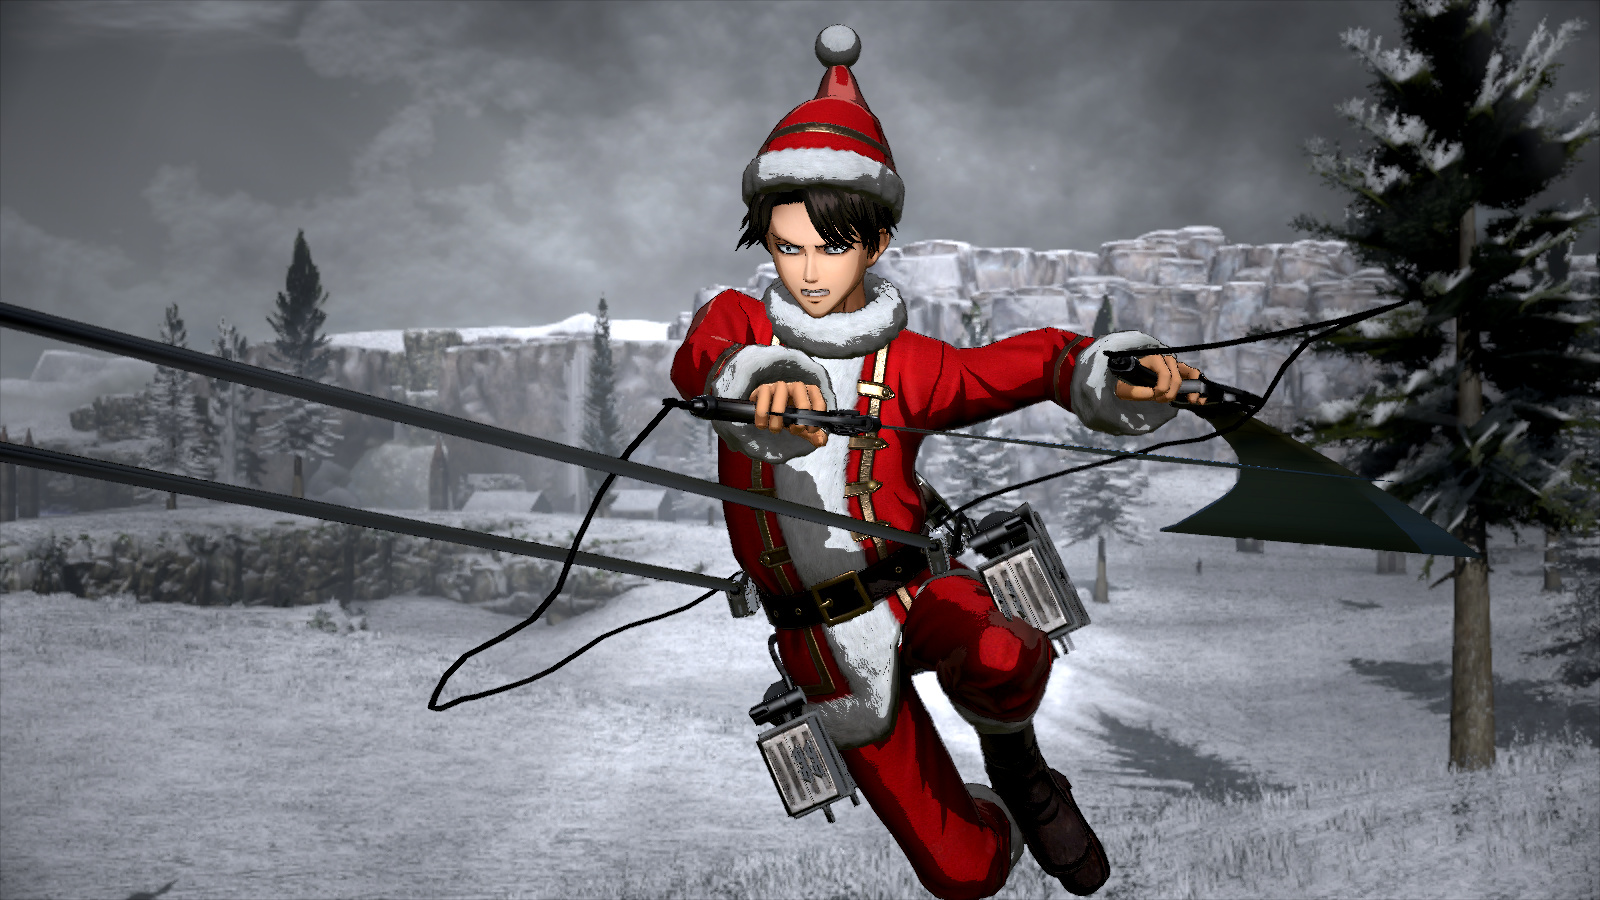 Attack On Titan 2 Christmas Outfit 2018 Promotional Art Mobygames